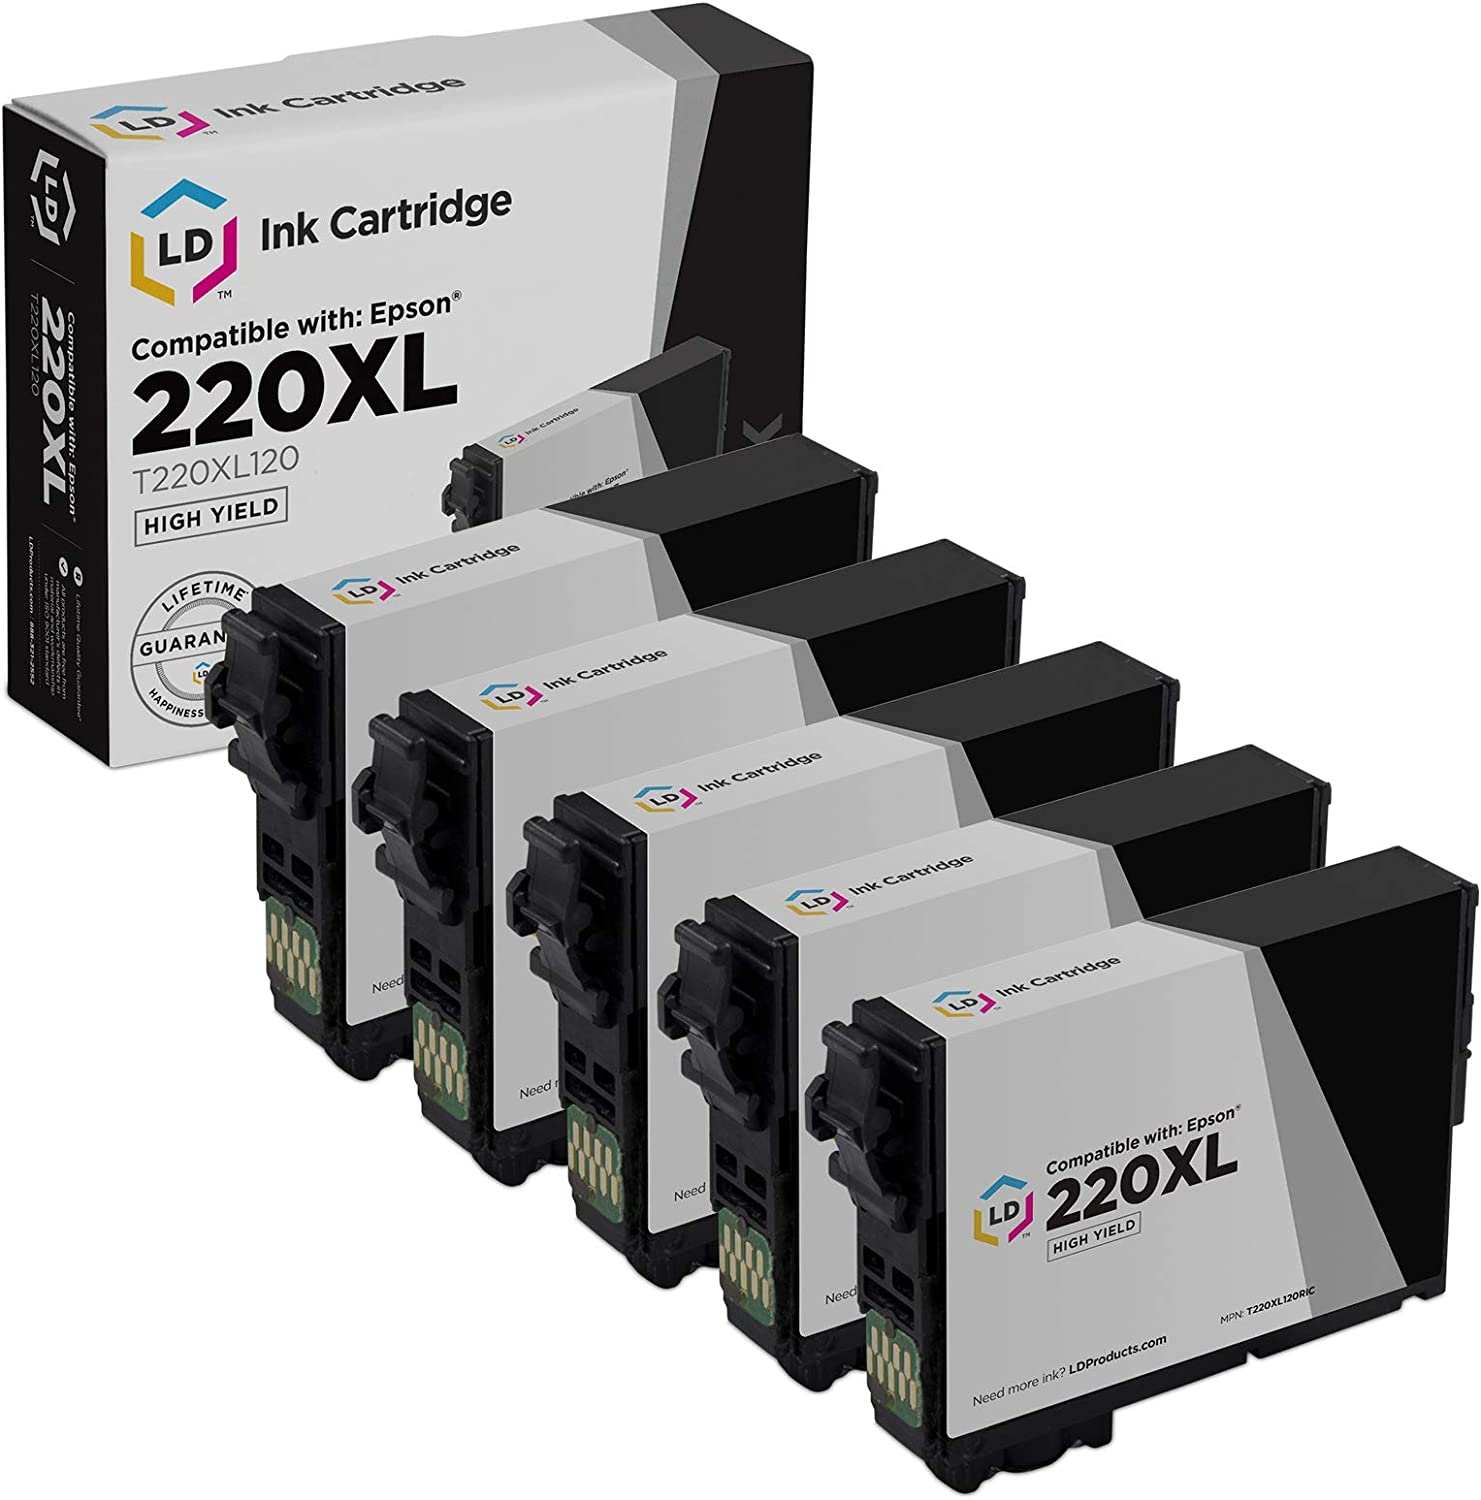 LD Remanufactured Ink Cartridge Replacement for Epson 220XL T220XL120 High Yield (Black, 5-Pack)